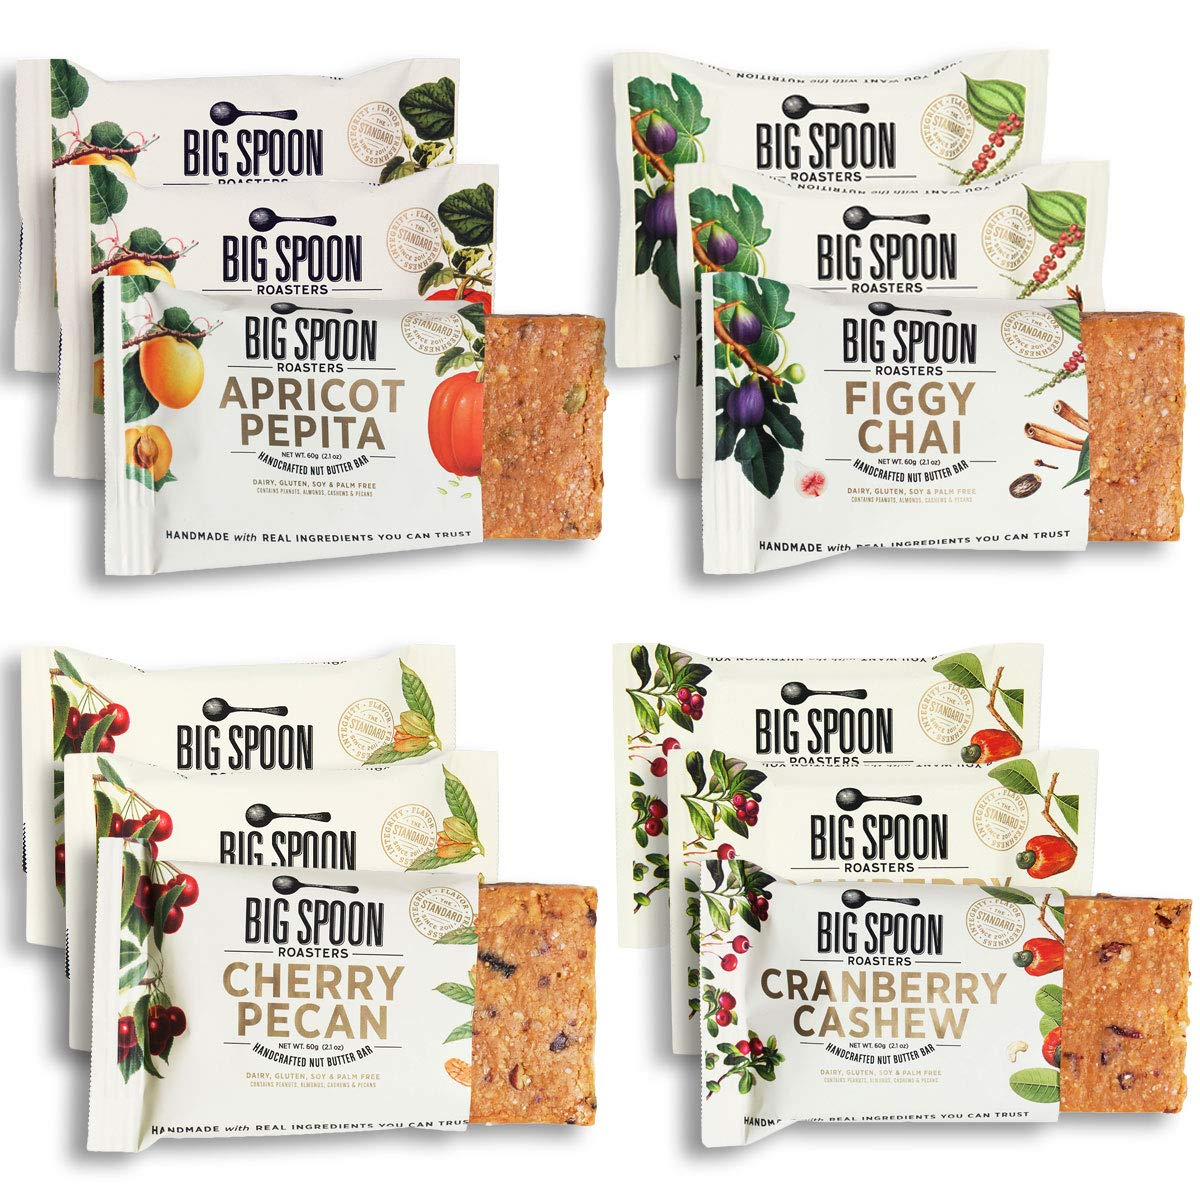 Big Spoon Roasters Nut Butter Bars Variety Pack - Cherry Pecan, Apricot Pepita, Cranberry Cashew & Figgy Chai - High Protein Bars Variety Pack with Non-GMO Pea Protein - 12-Count (3 of Each Flavor) by Big Spoon Roasters